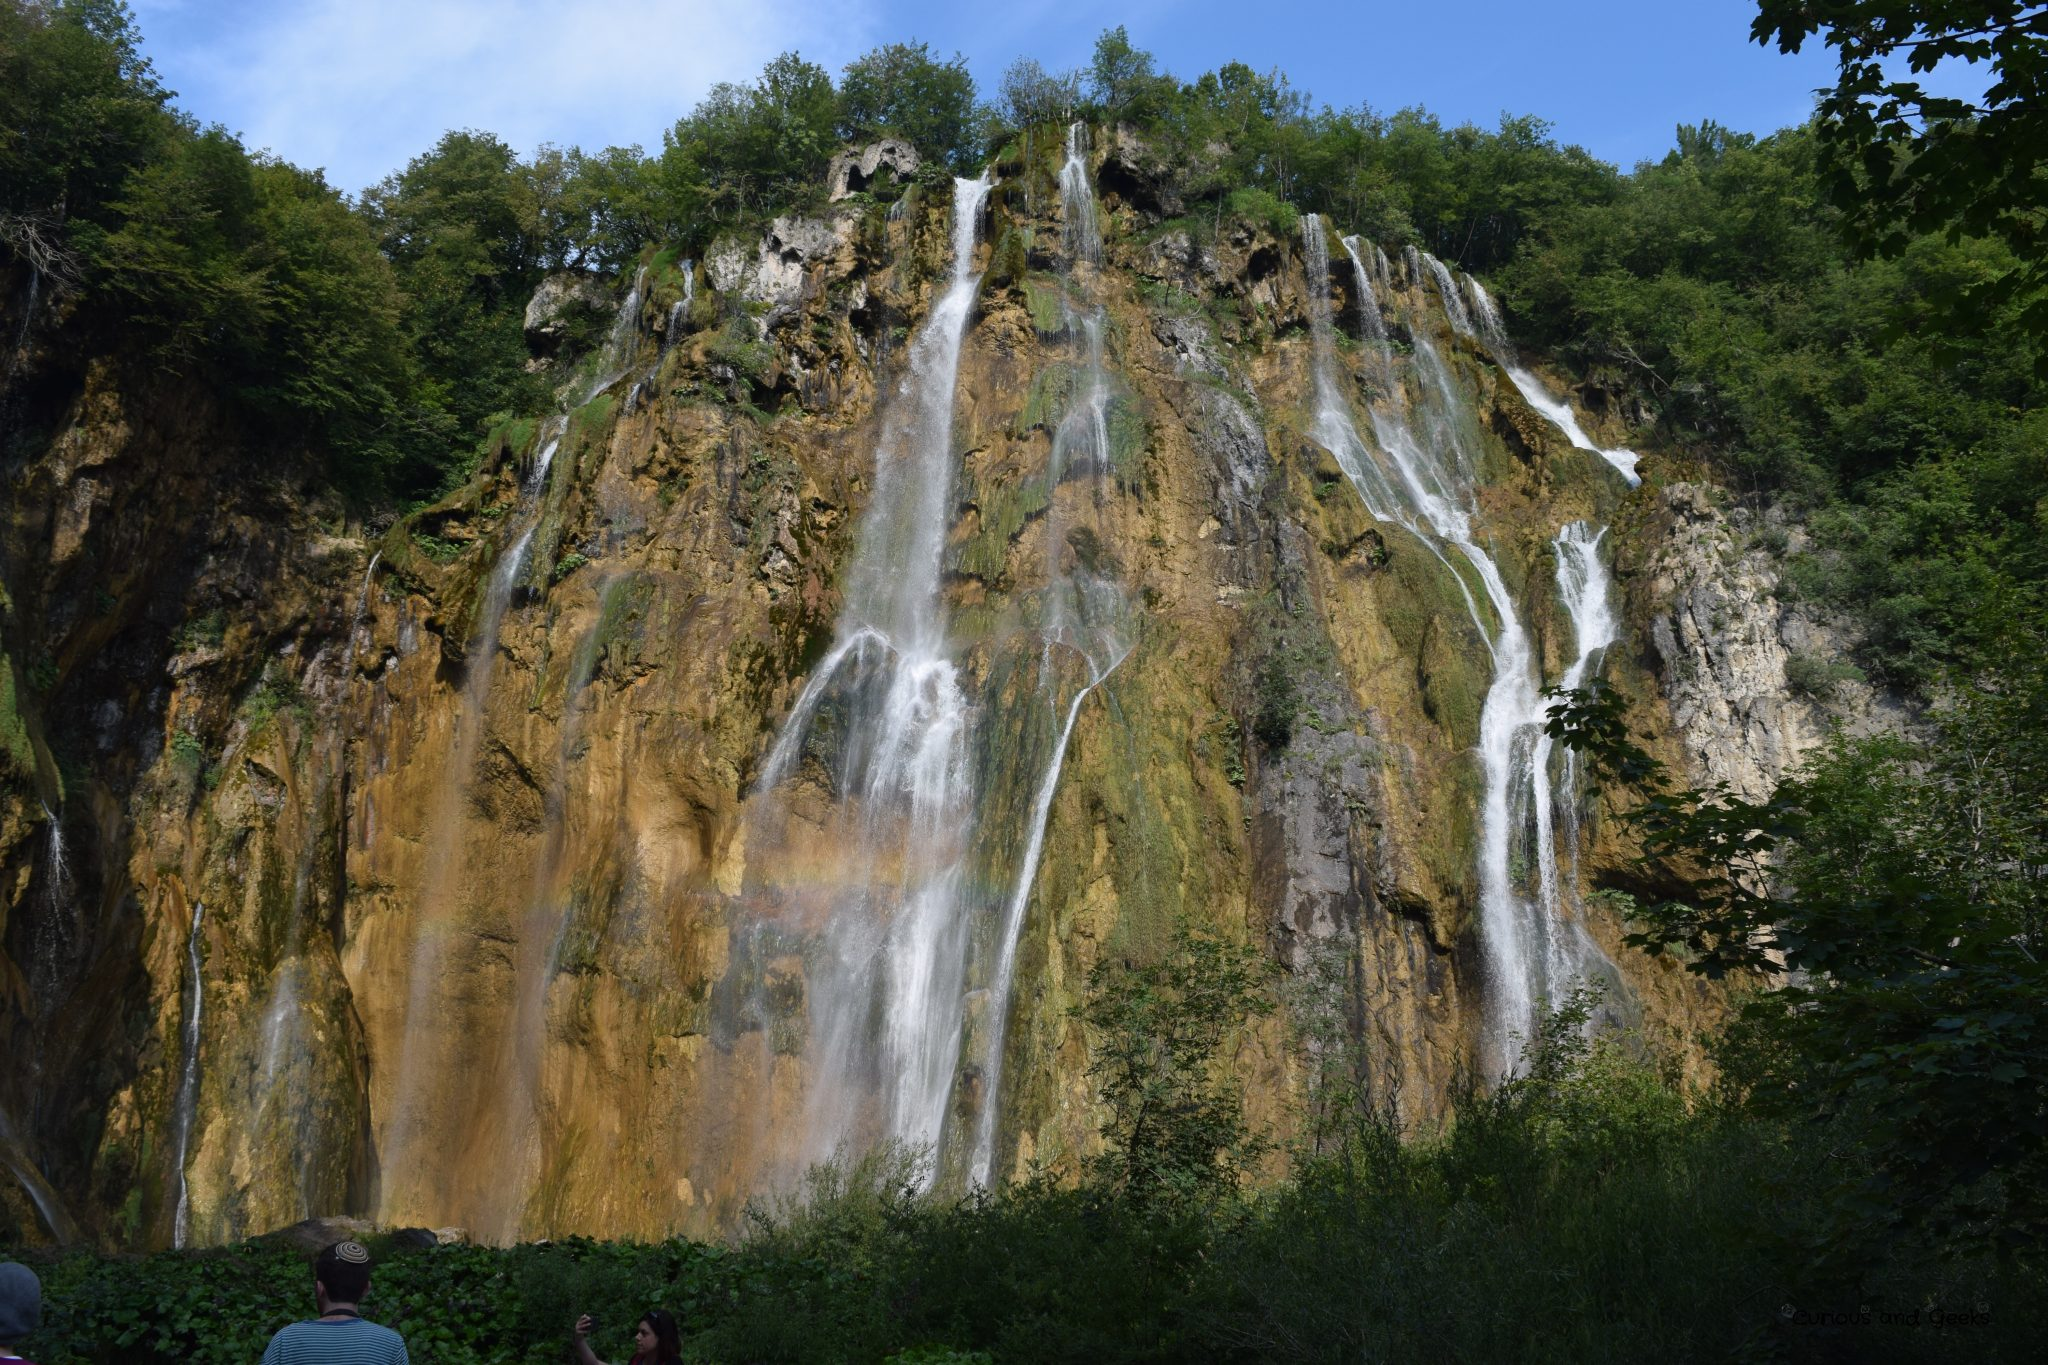 The big waterfall in Plitvice